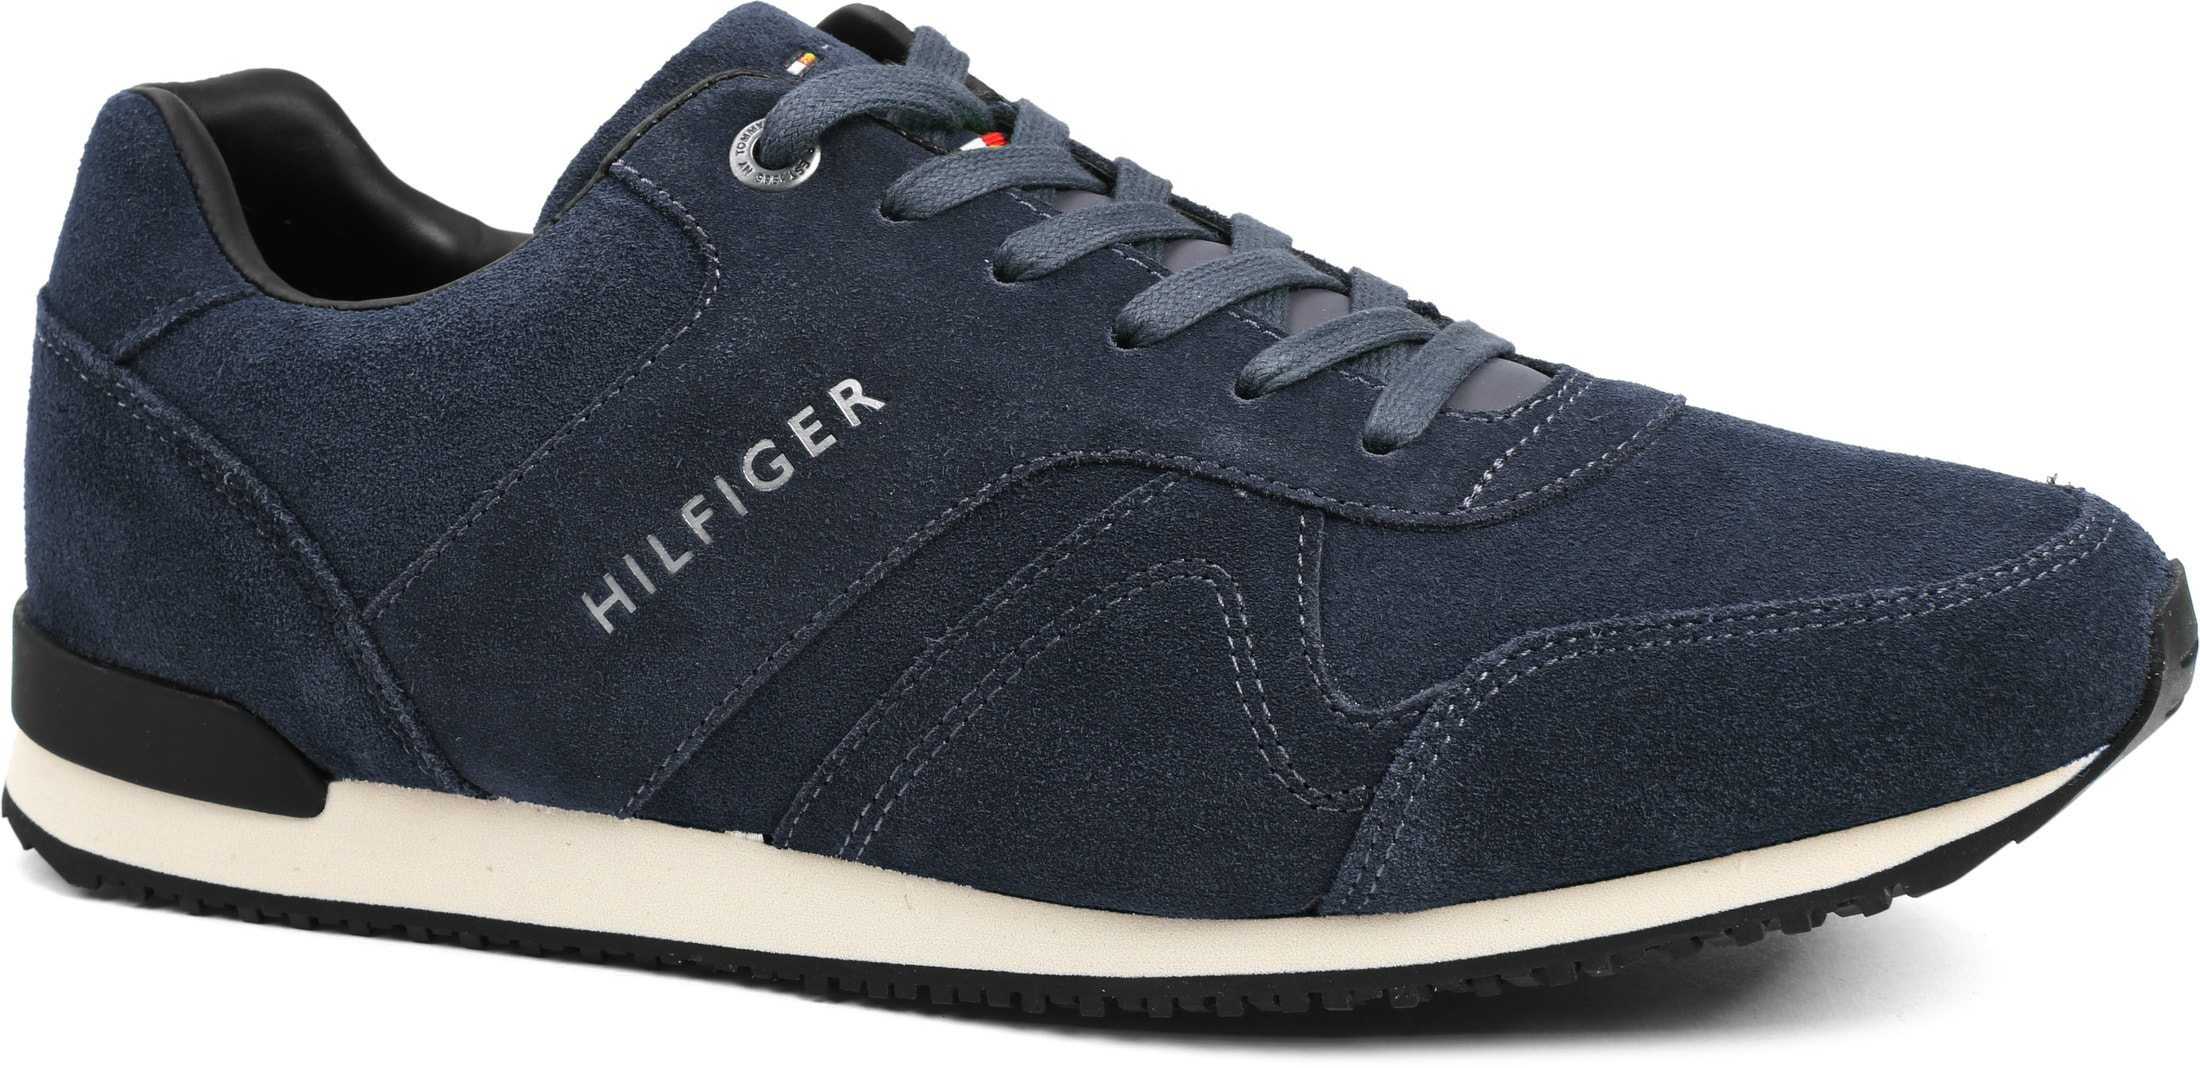 Tommy Hilfiger Sneaker Navy Night foto 0